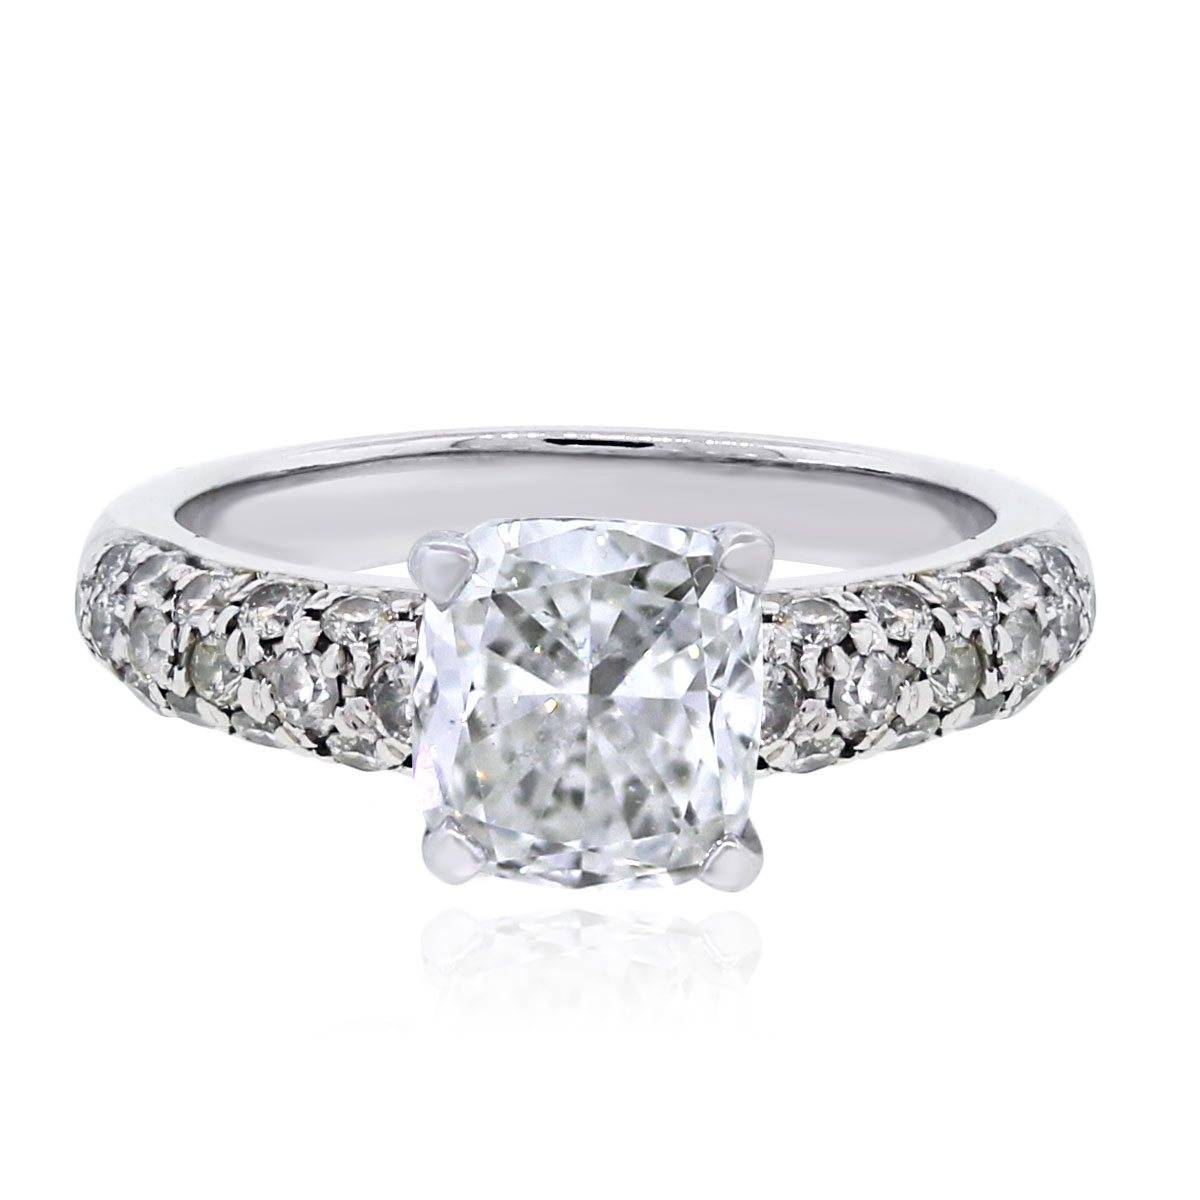 Cushion Cut Engagement Rings With Wedding Band Cushion Cut Engagement Rings No Halo Raymond Lee Jewelers